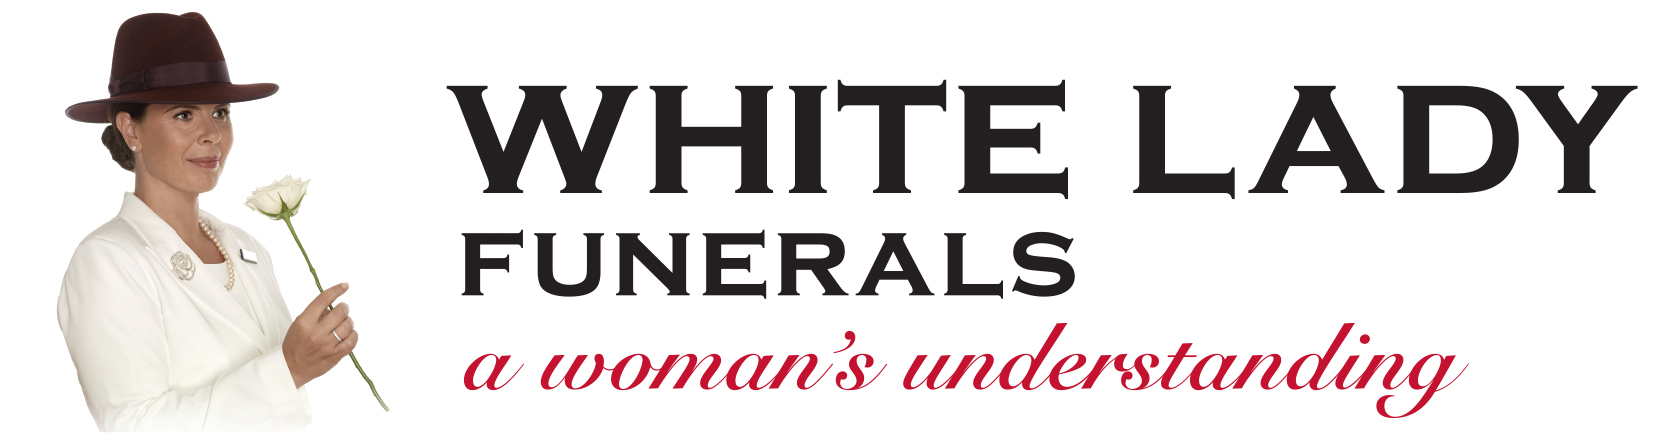 2017 White Lady Funerals logo